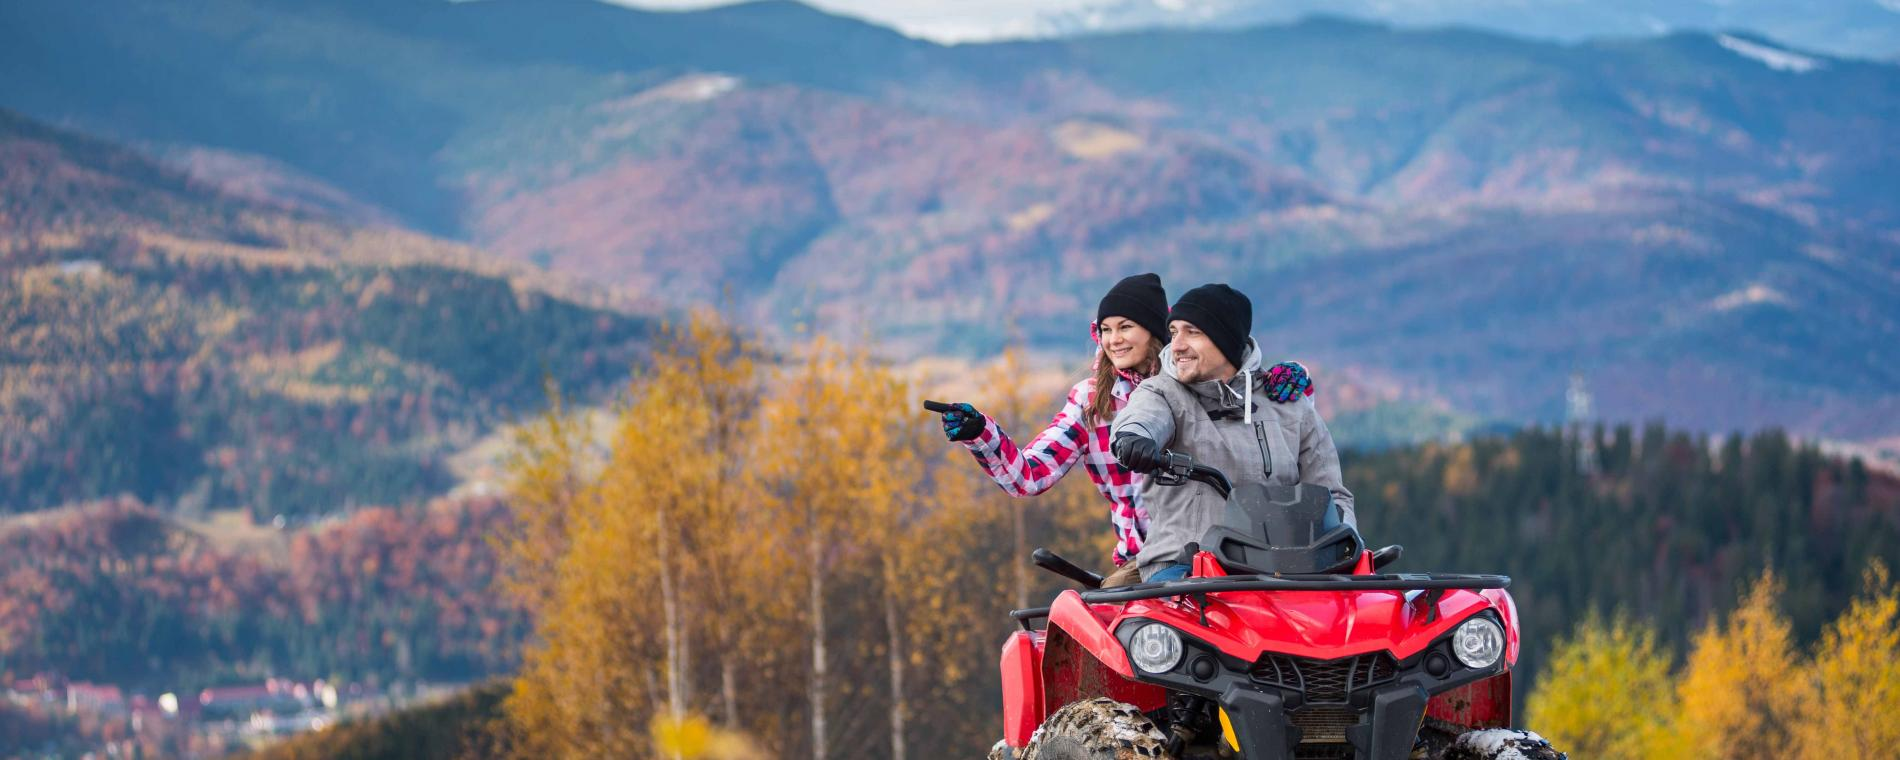 Coverage for four-wheeler fun on an outdoor vacation